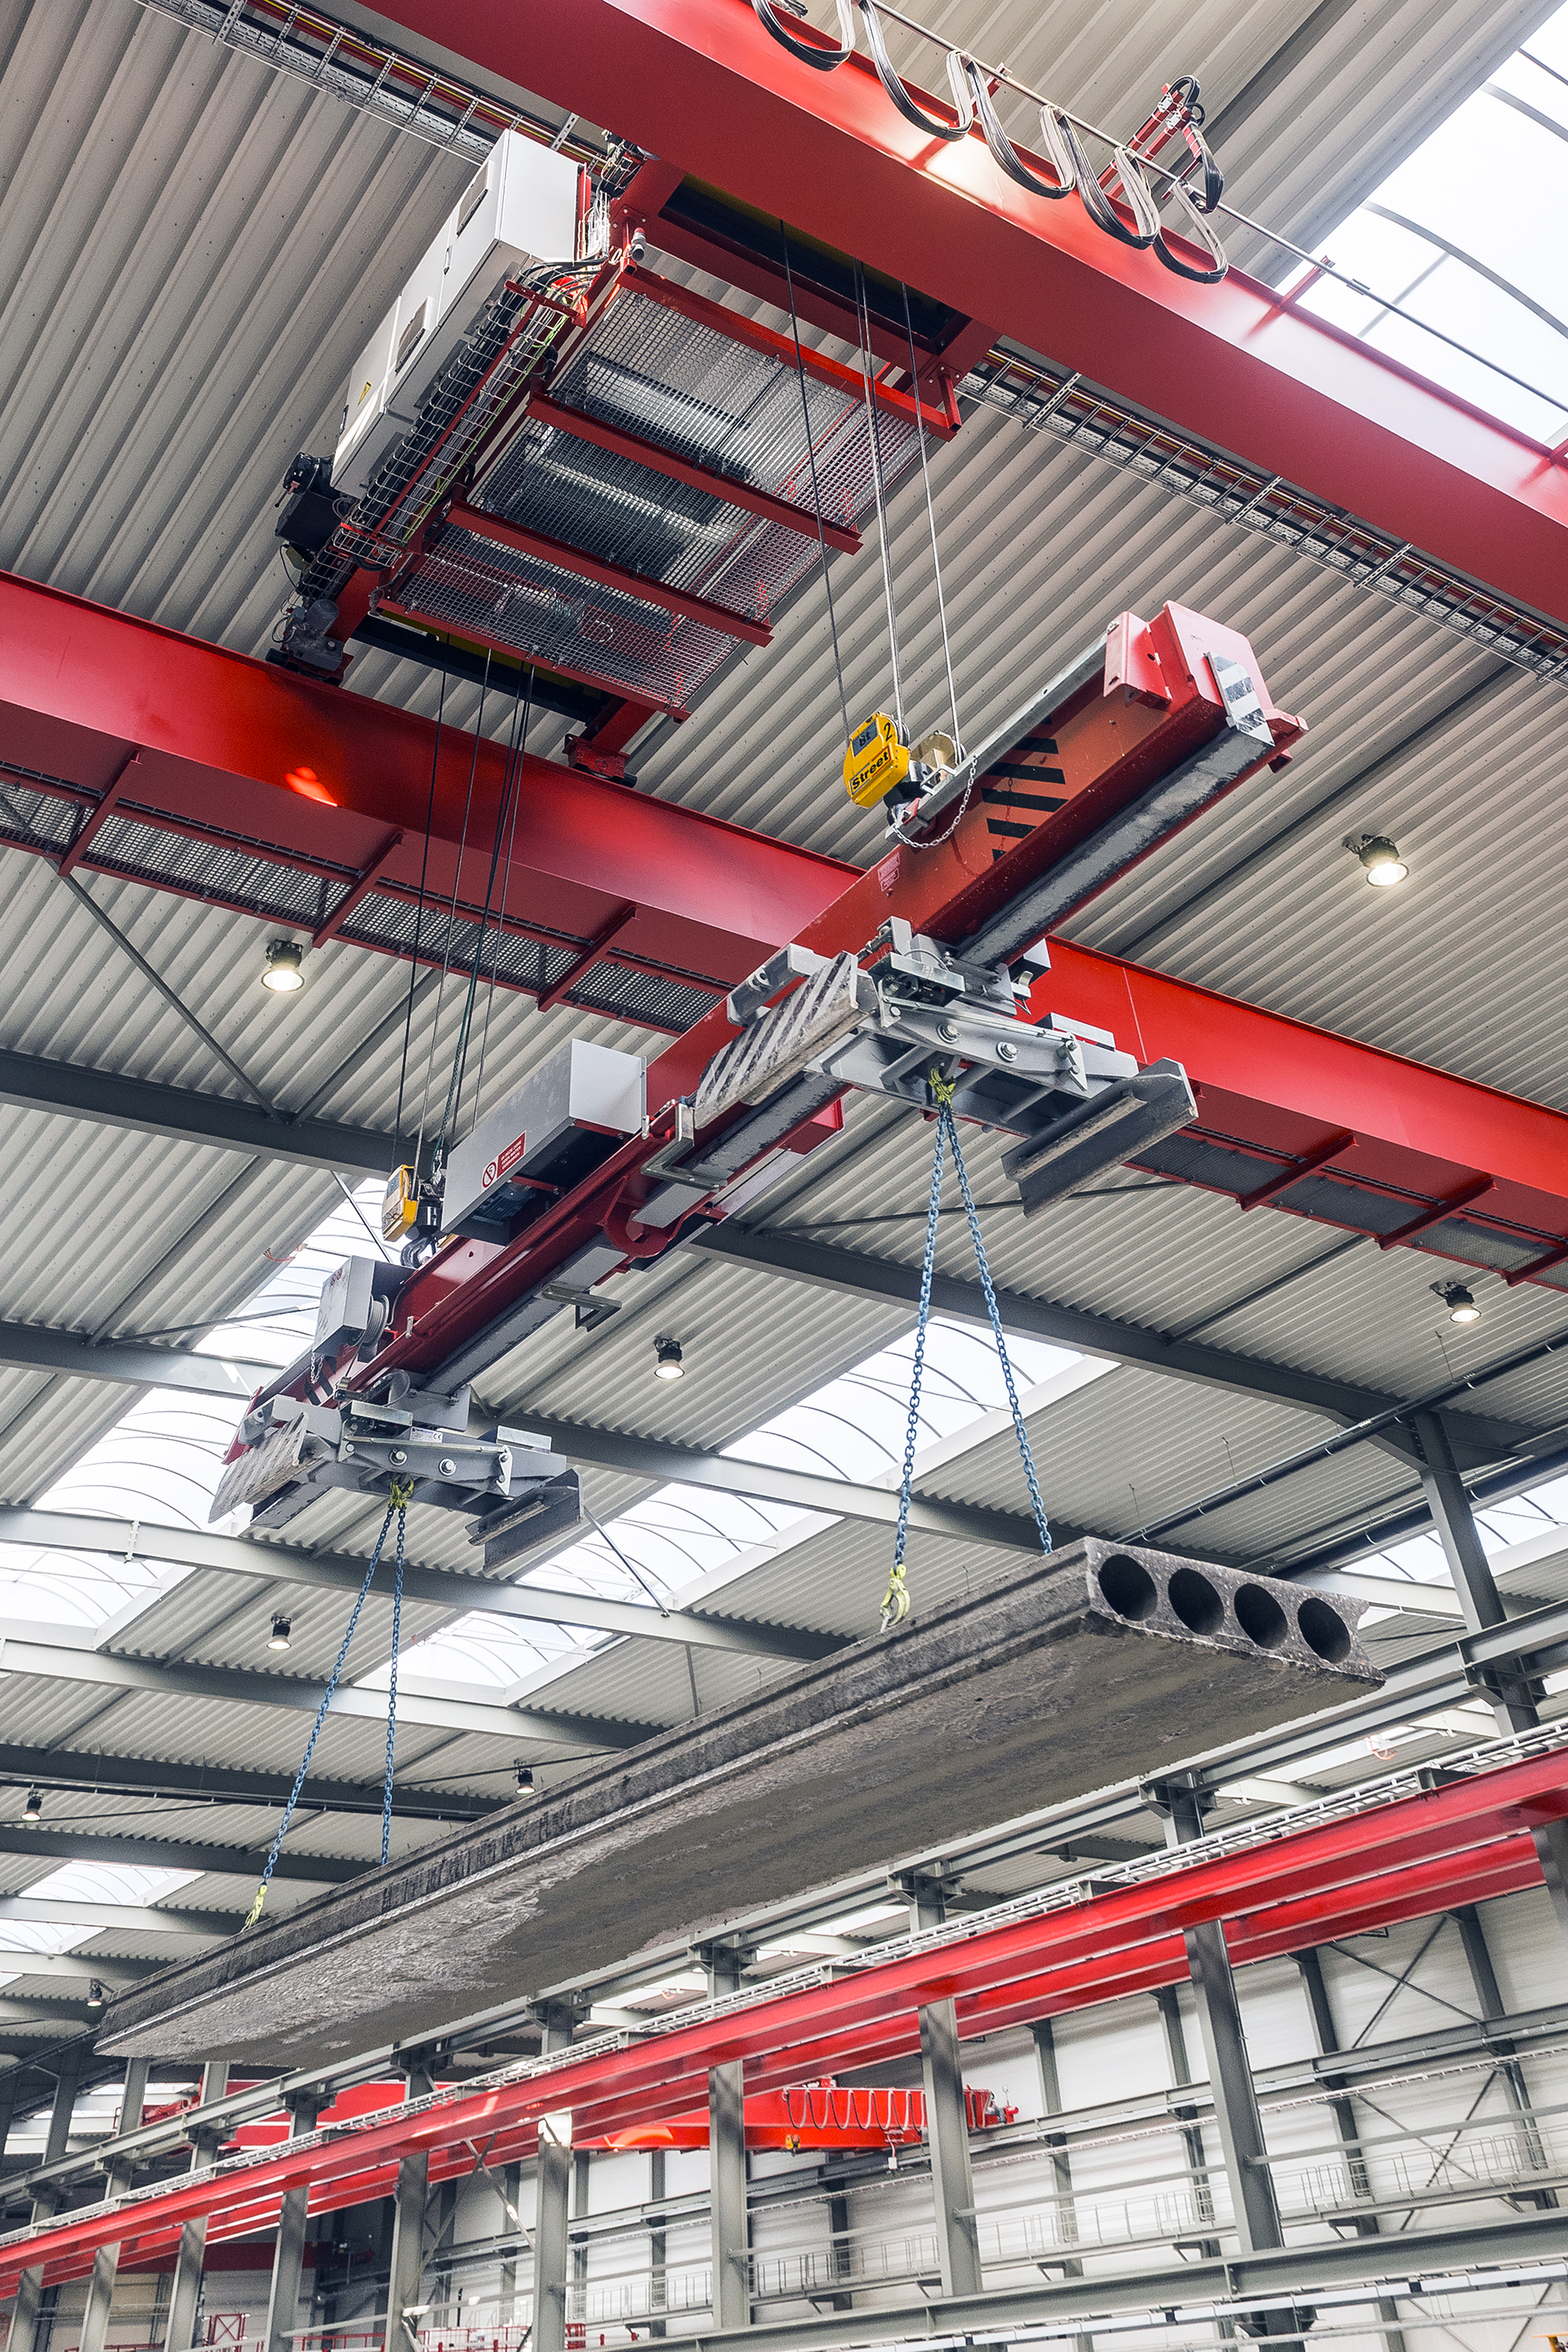 TCS_Timmers_DBK 2x 8t - 23 m dual girder overhead cranes equipped by intelligent motion control